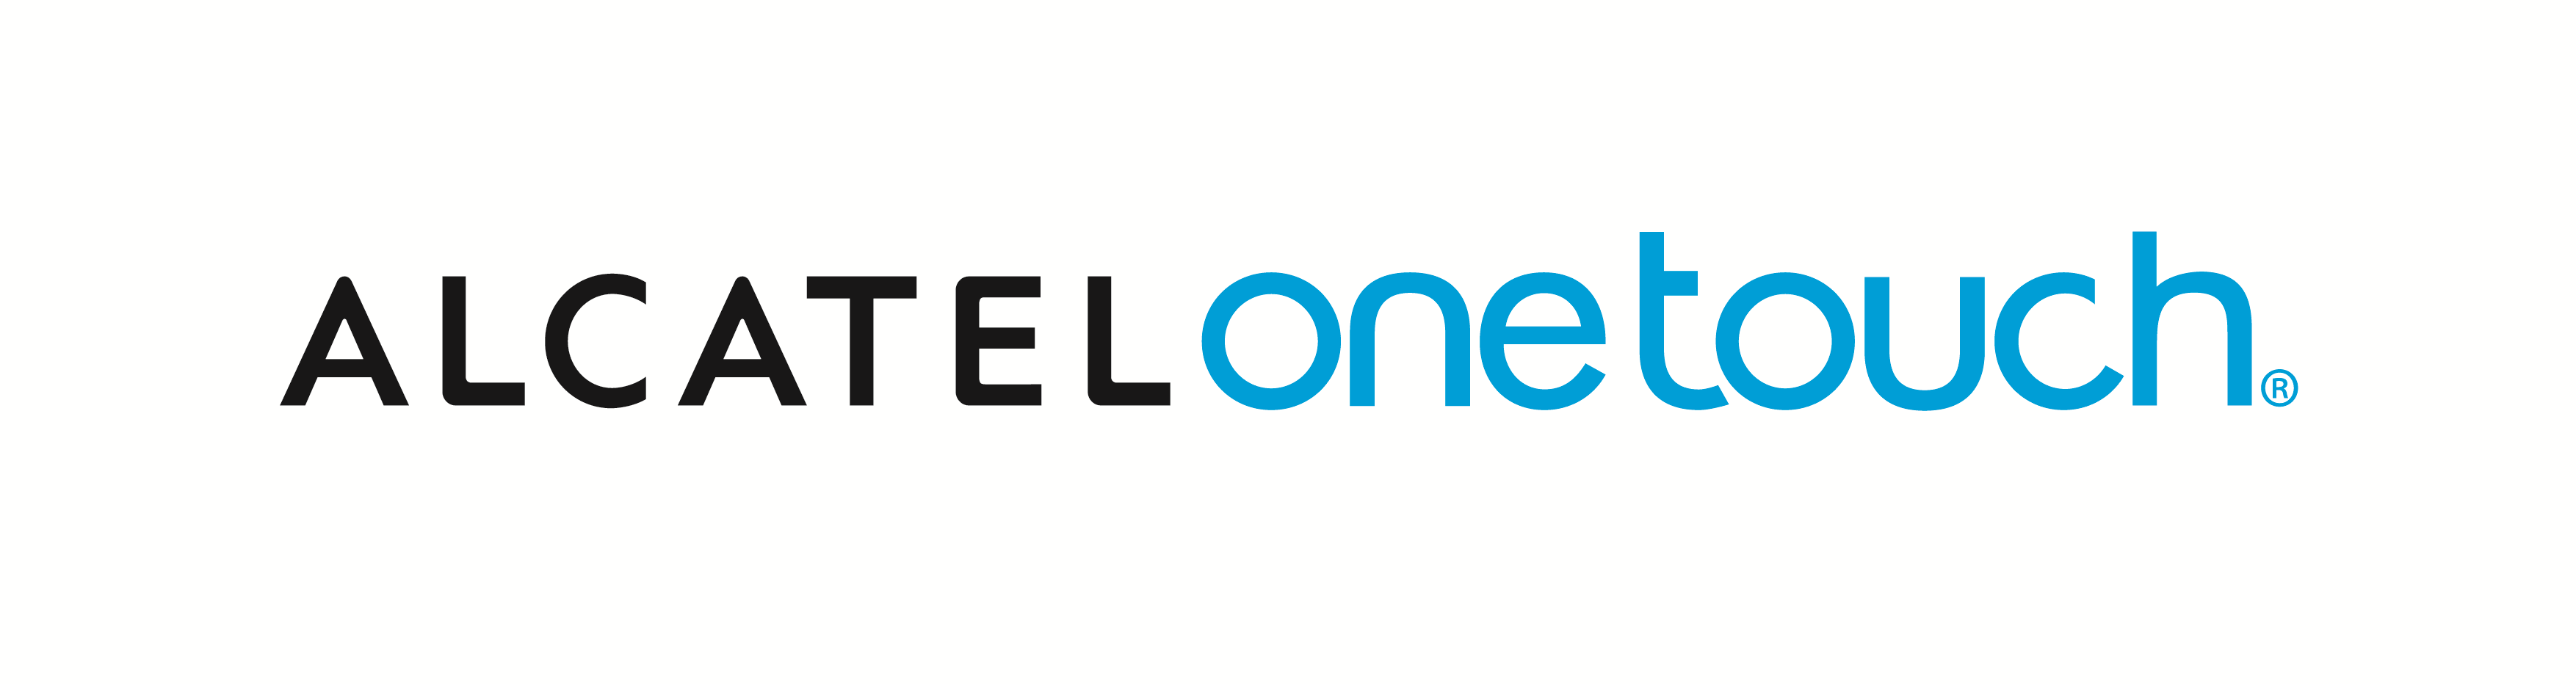 ALCATEL ONE TOUCH LOGO colors